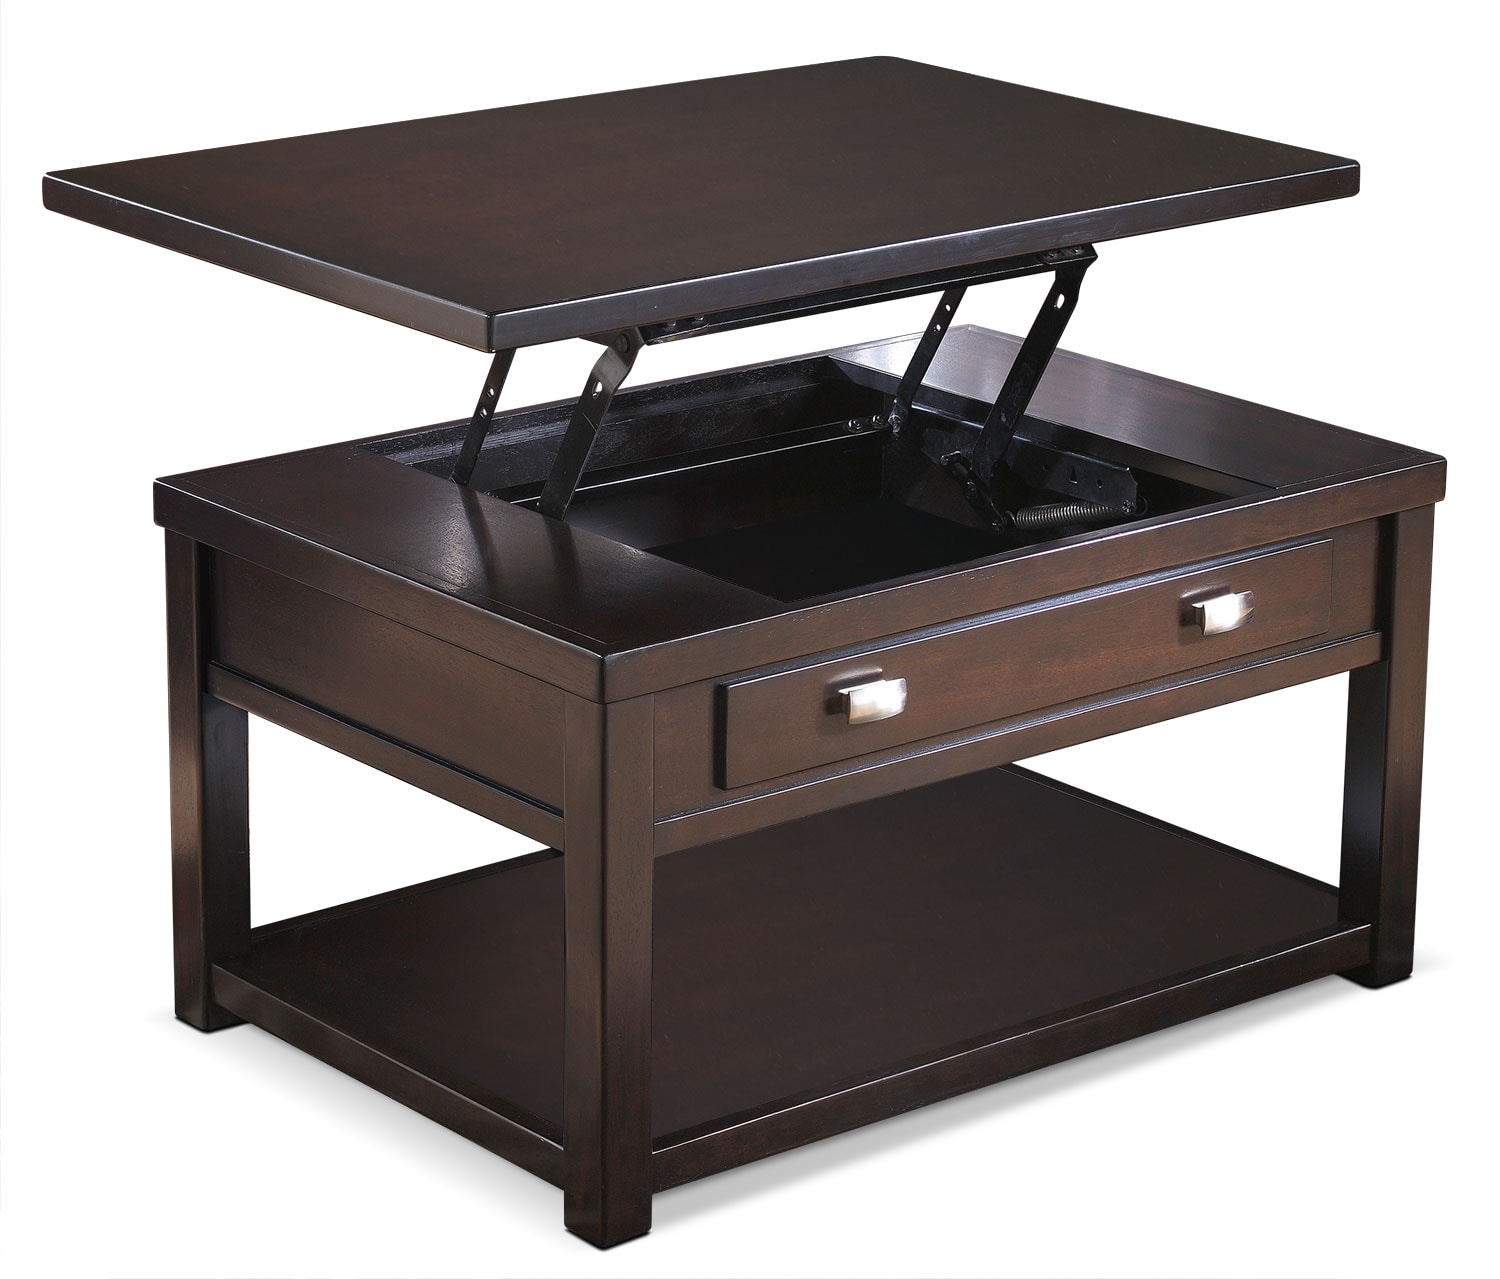 Hatsuko Coffee Table With Lift Top United Furniture Warehouse